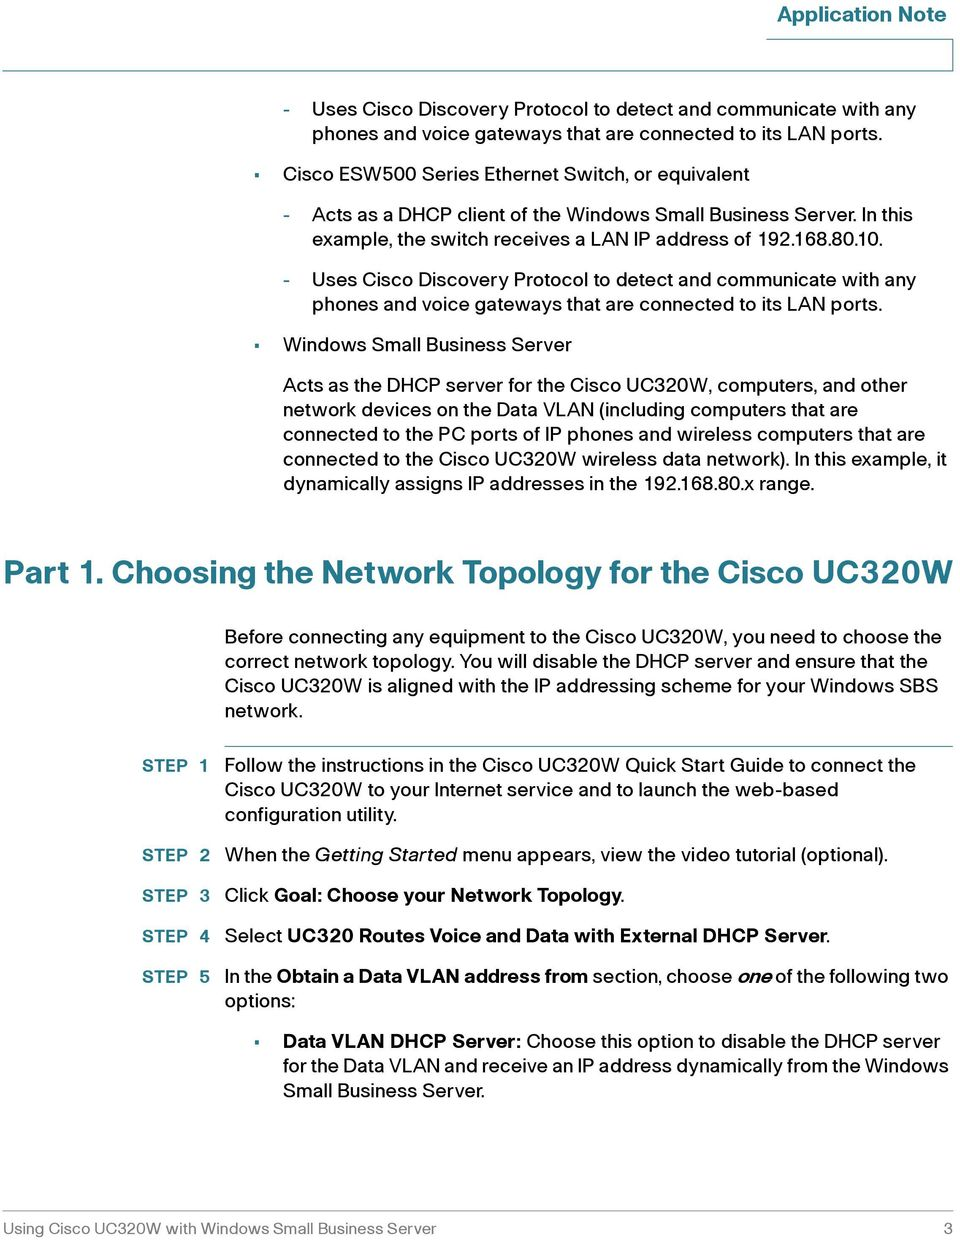 Windows Small Business Server Acts as the DHCP server for the Cisco UC320W, computers, and other network devices on the Data VLAN (including computers that are connected to the PC ports of IP phones